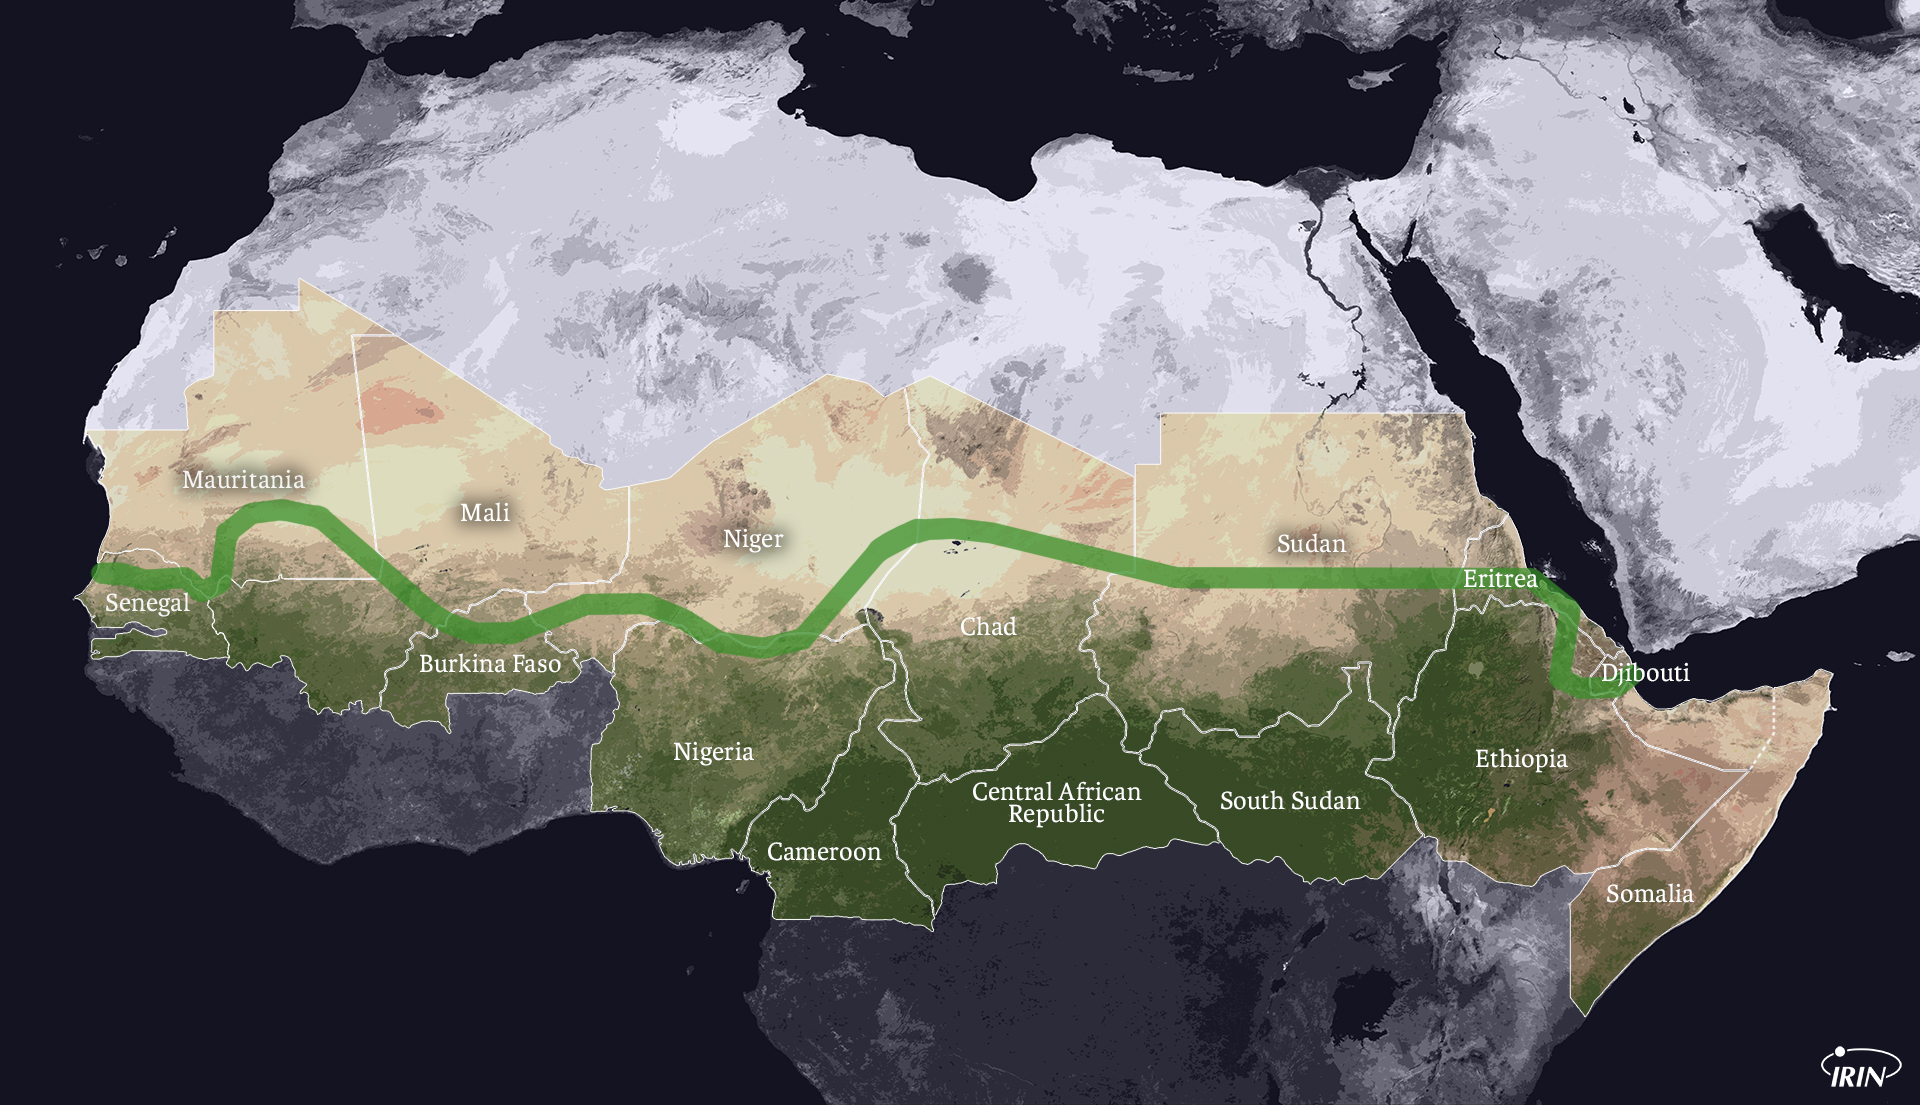 Map of East and West Africa showing the Green Wall